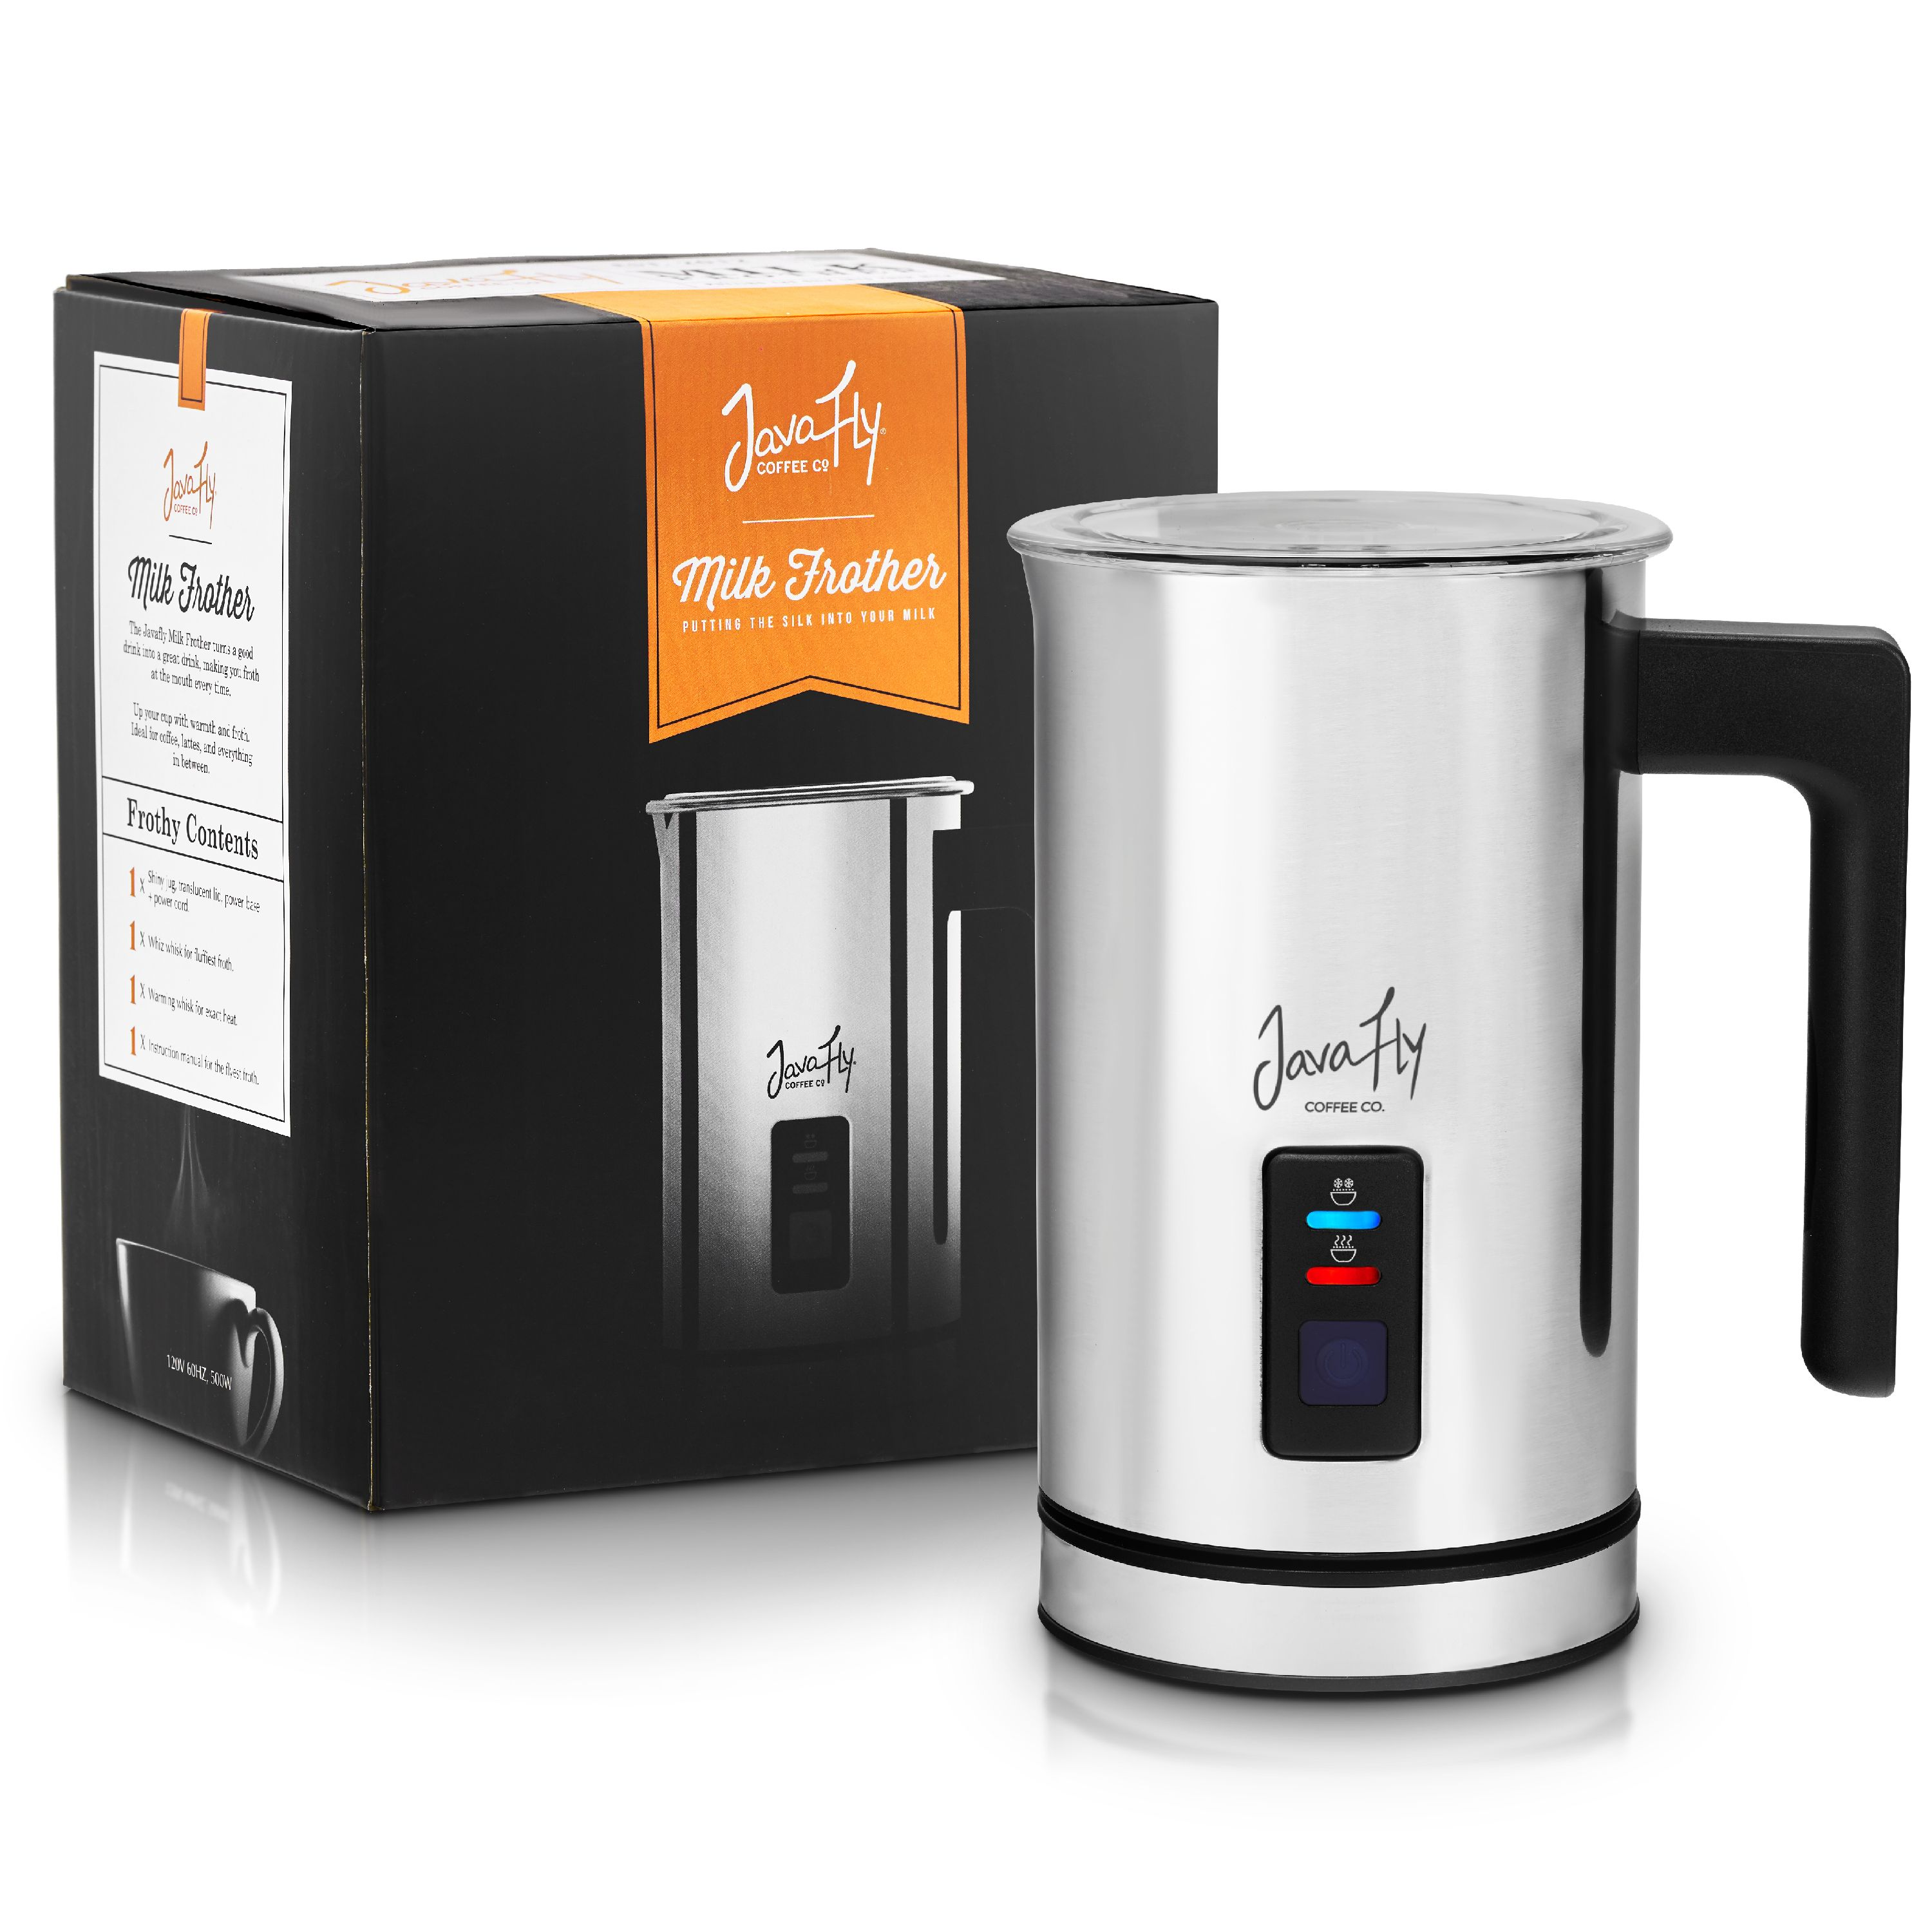 Milk Frother and Milk Steamer from JavaFly for Cafe Latte